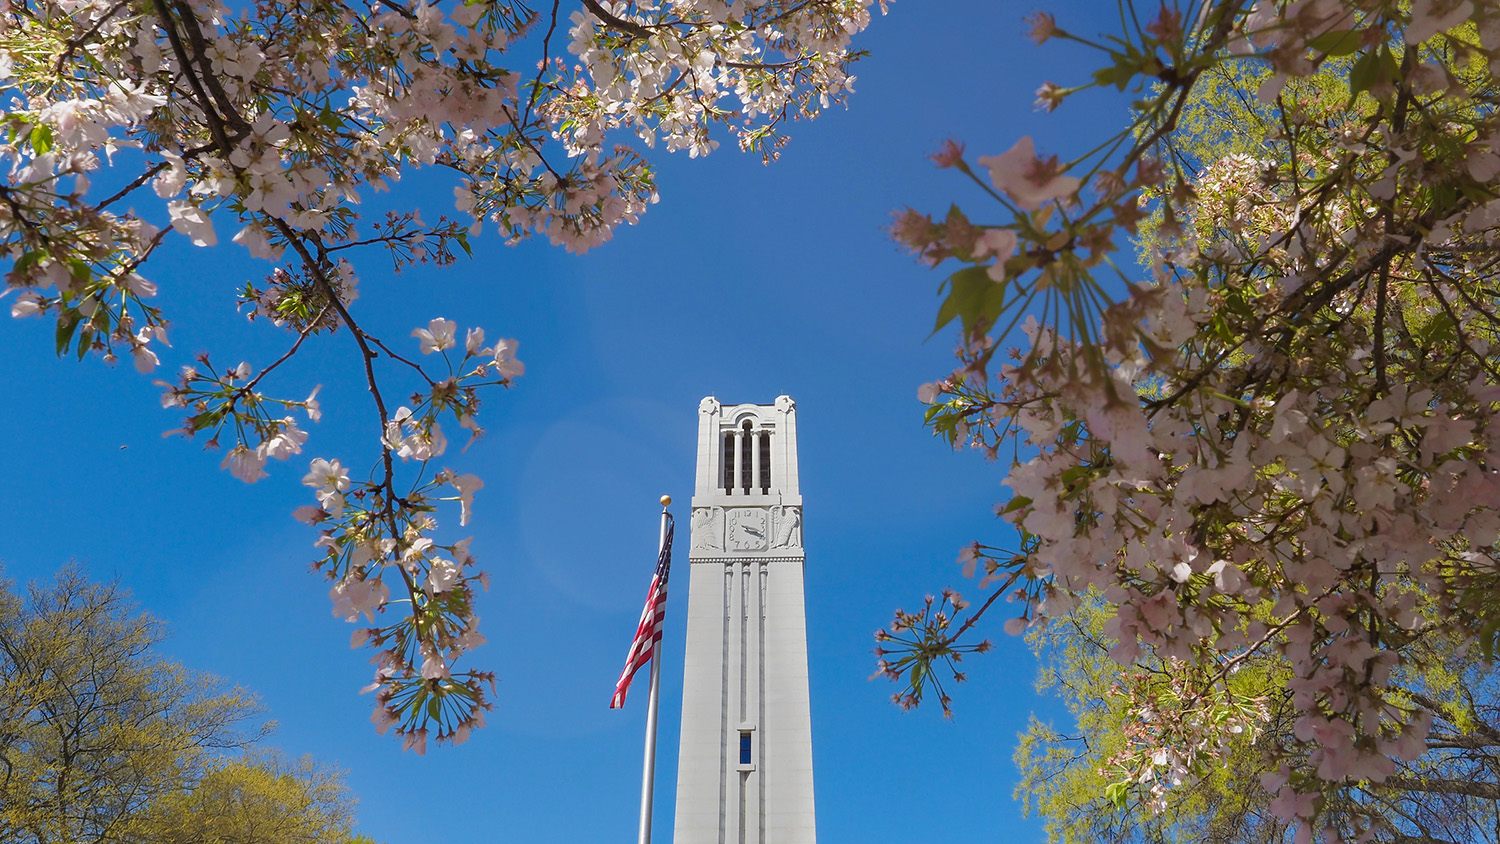 belltower surrounded by blooming flowers